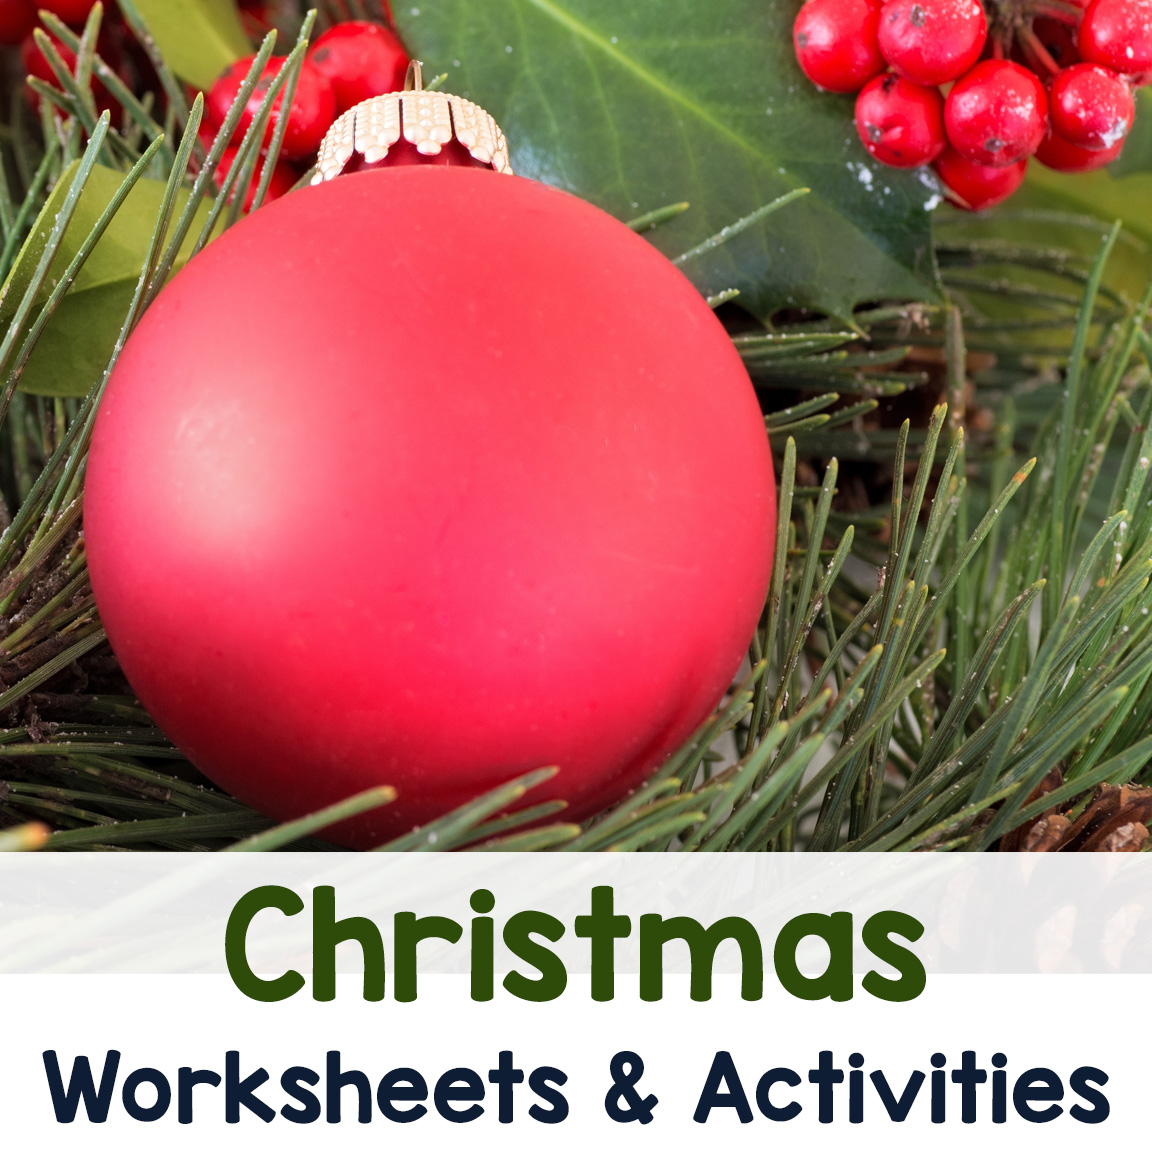 hight resolution of Christmas Archives - Mamas Learning Corner